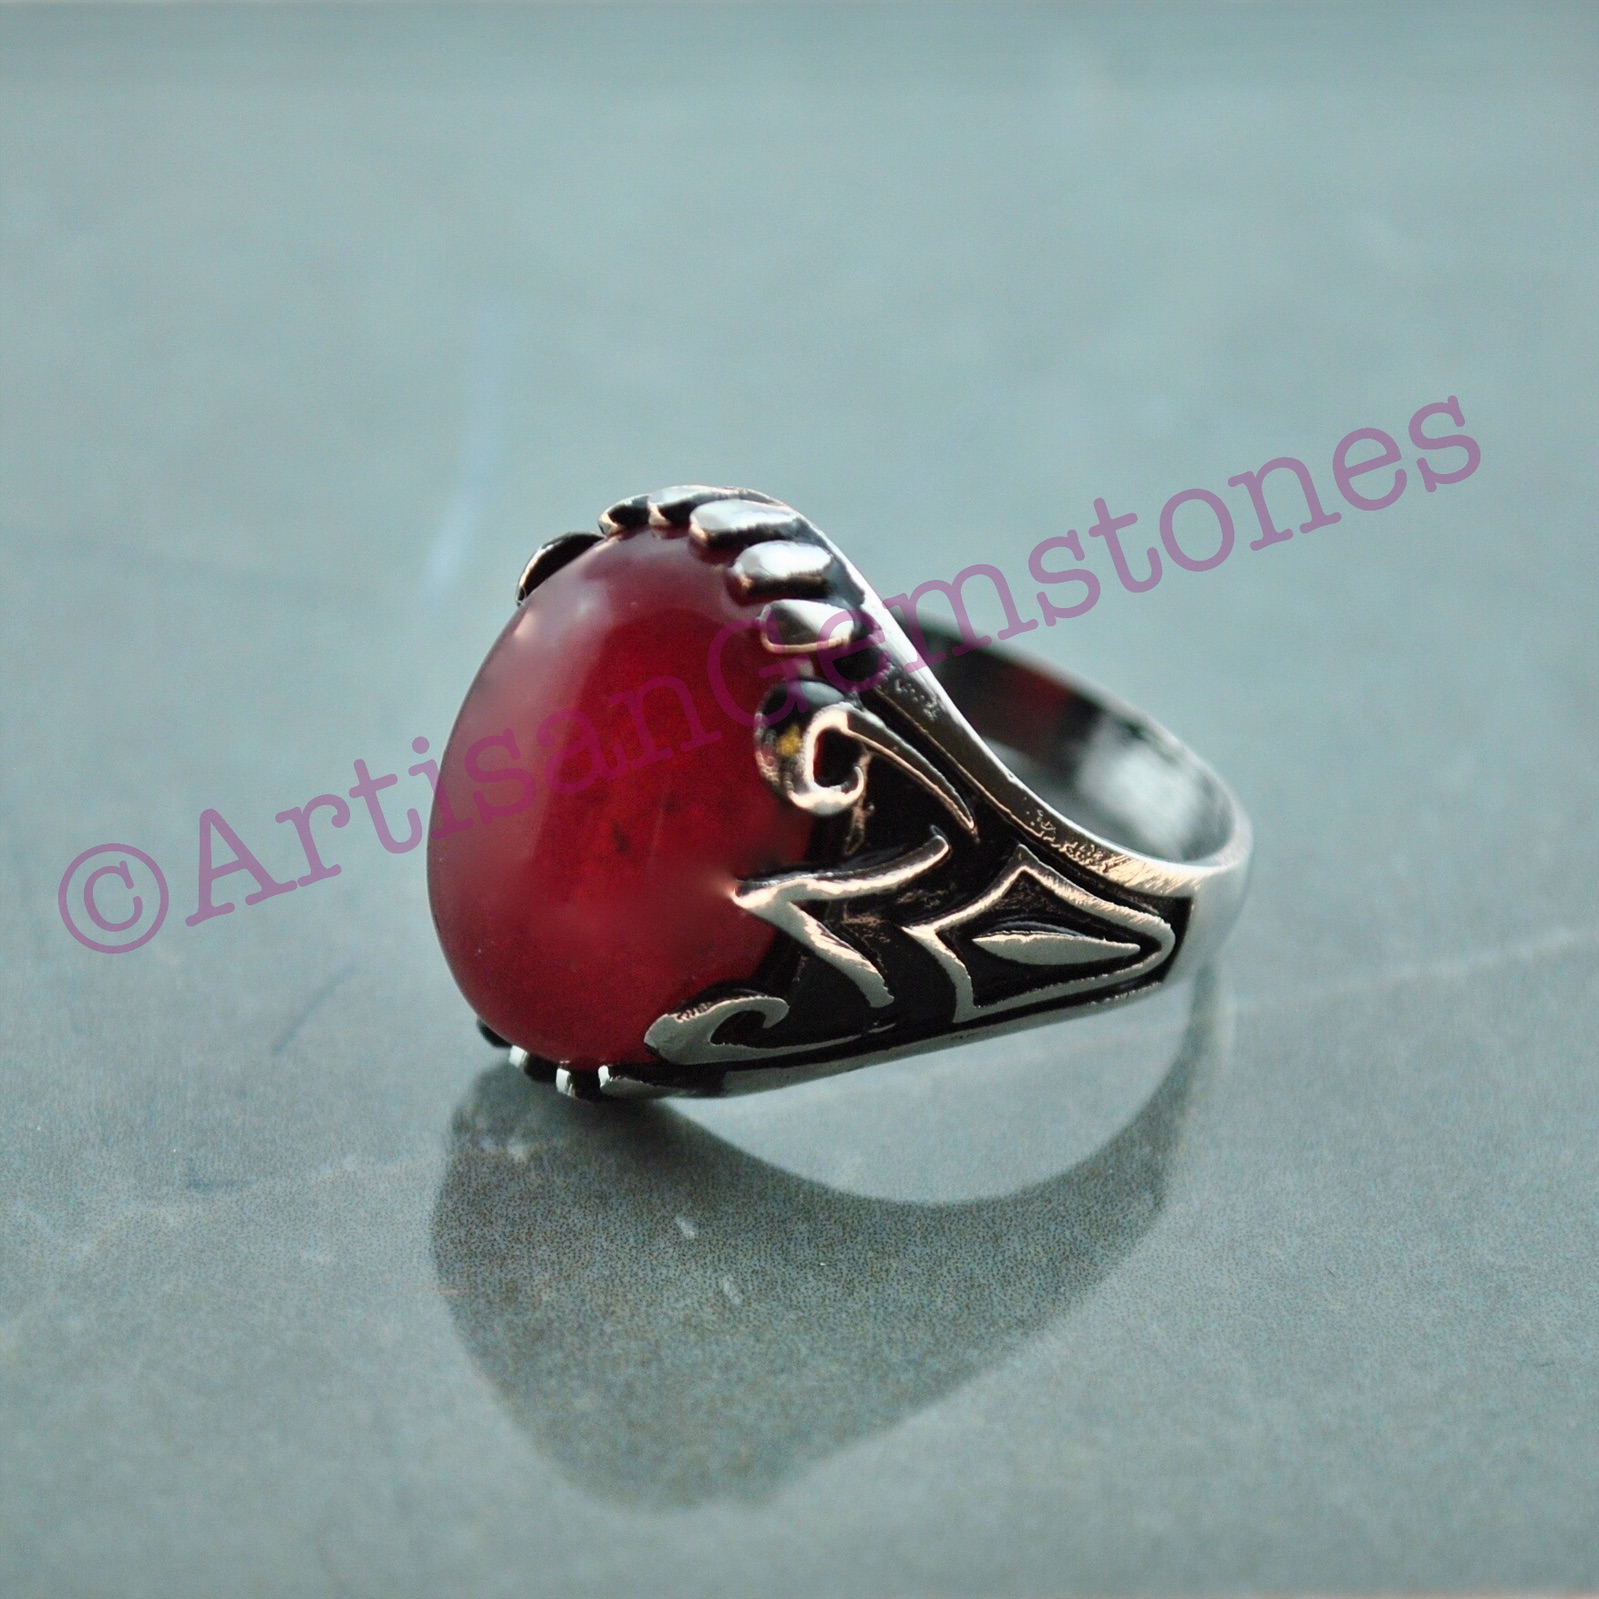 Maroon stone ring size 23 or U